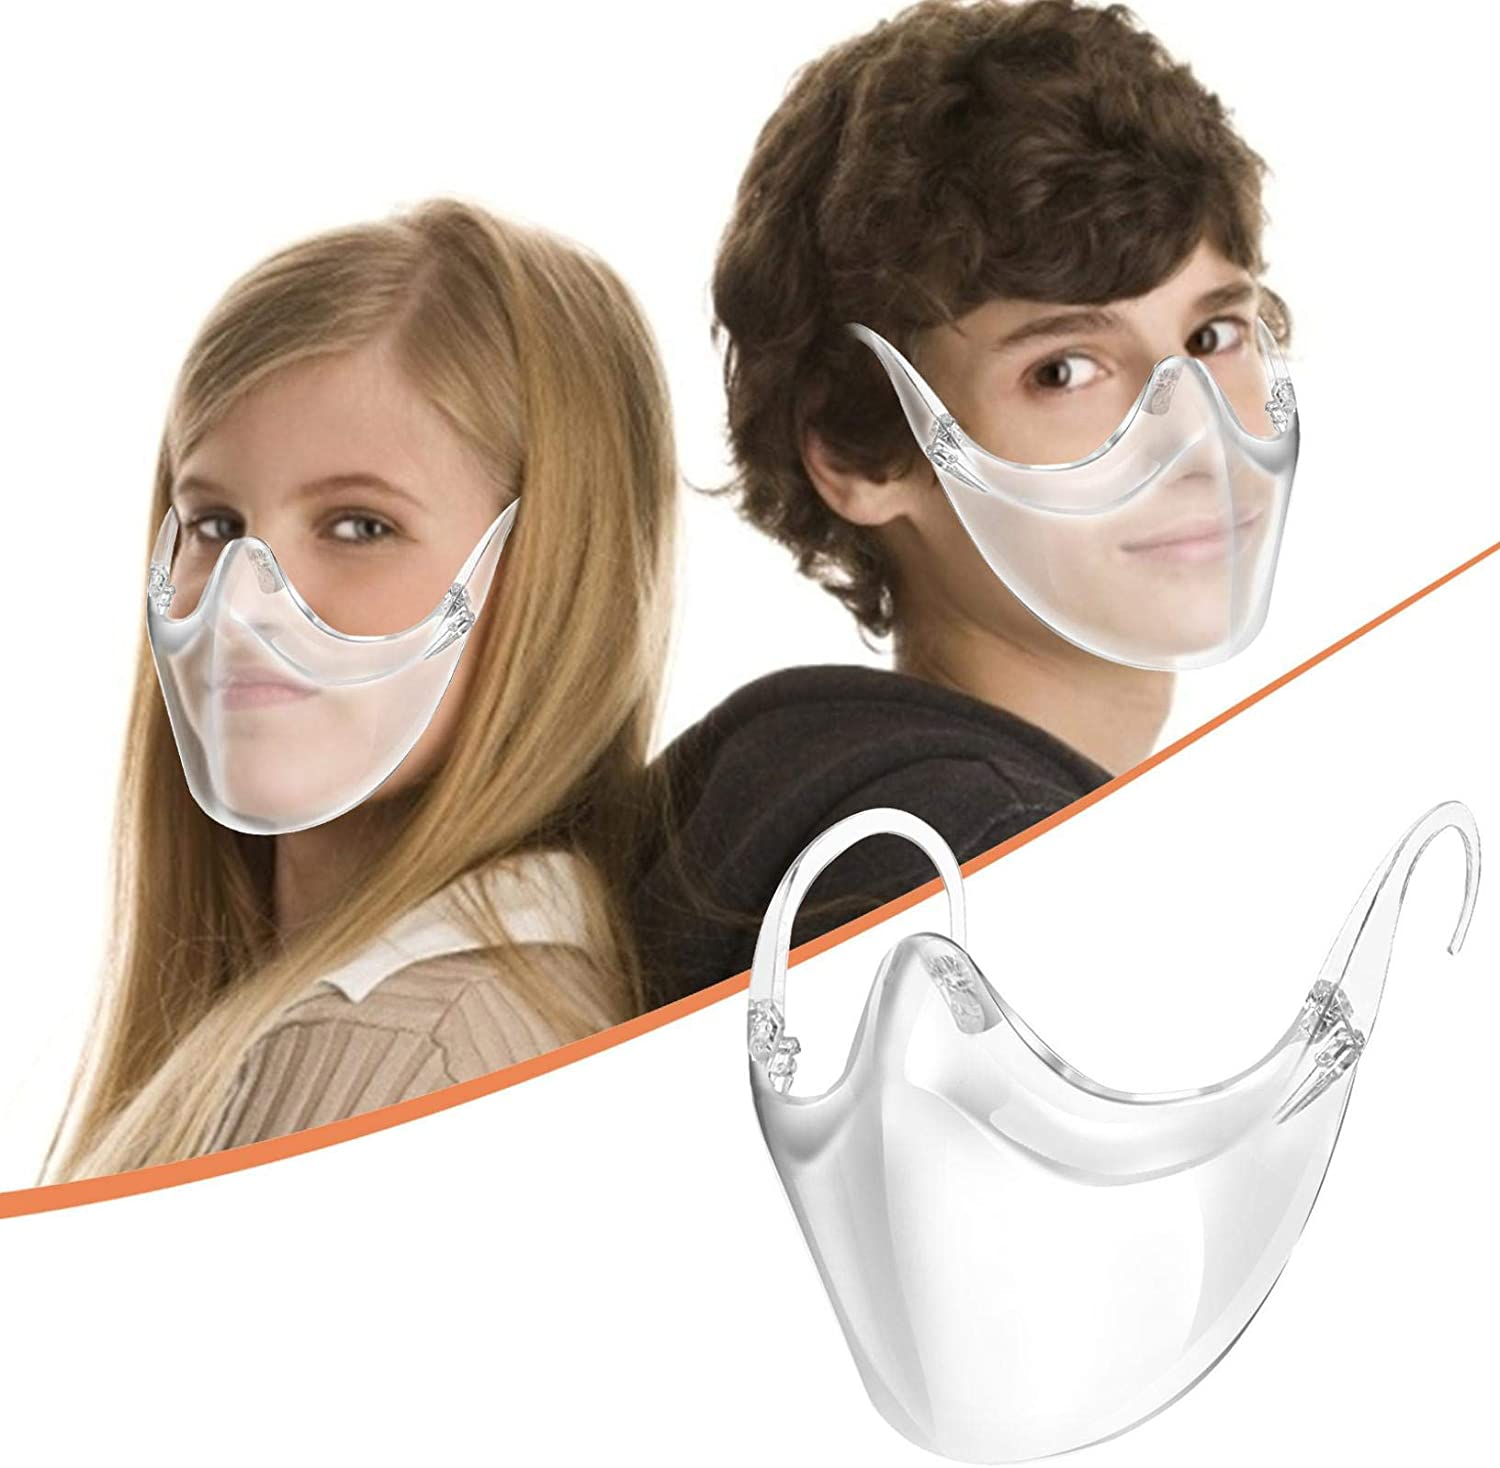 Goyalange 1PC Reusable Face_Mask for Kids Shield Clear Visual Plastic Face- for Boys Girls Coverings Washable Outdoor Protection Mini_Shield (1PC, white)